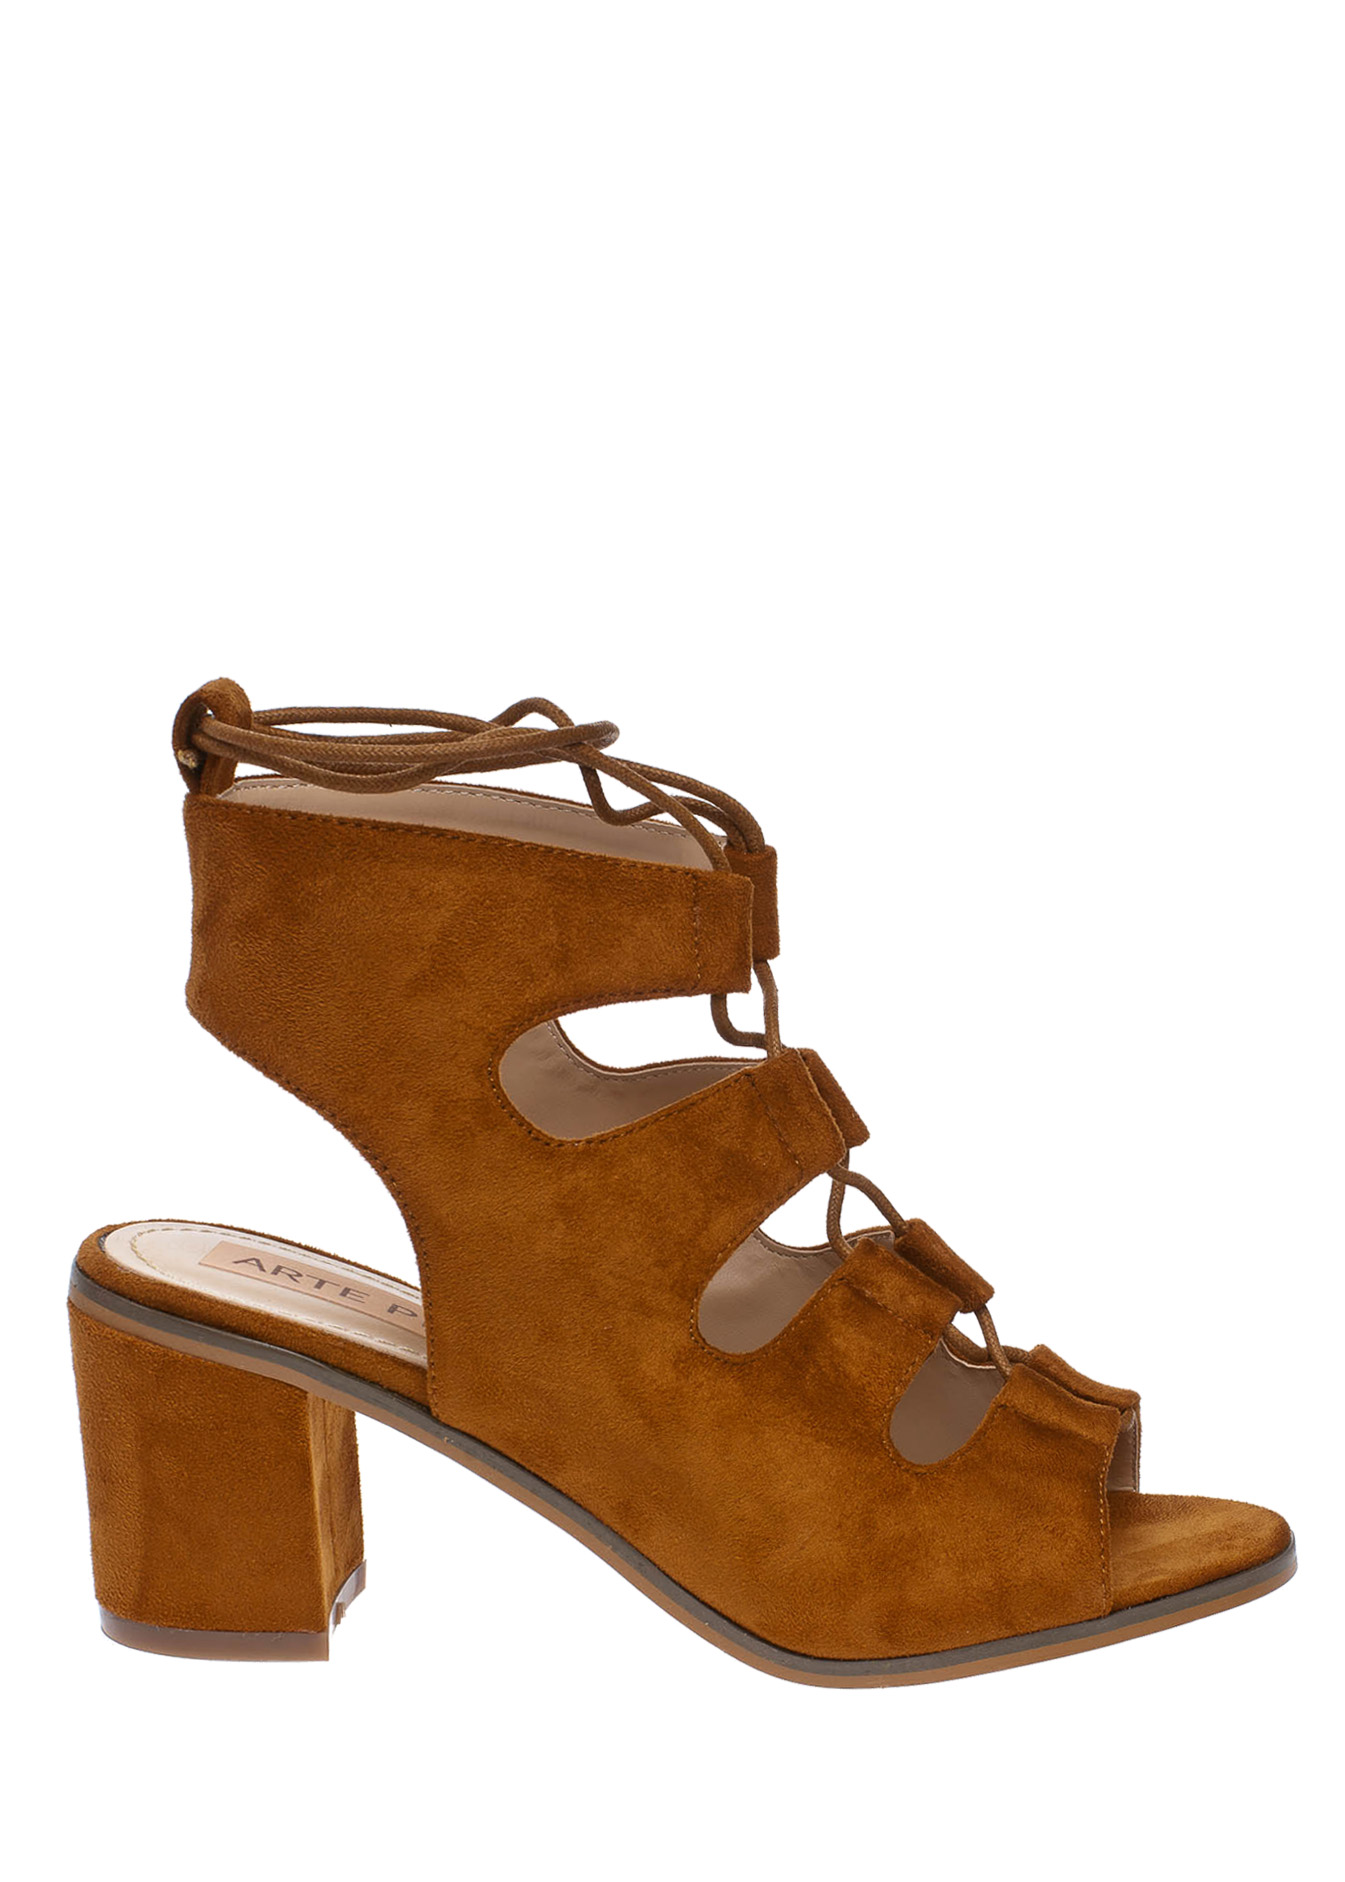 Aria suede lace up πέδιλο, ταμπά loafers